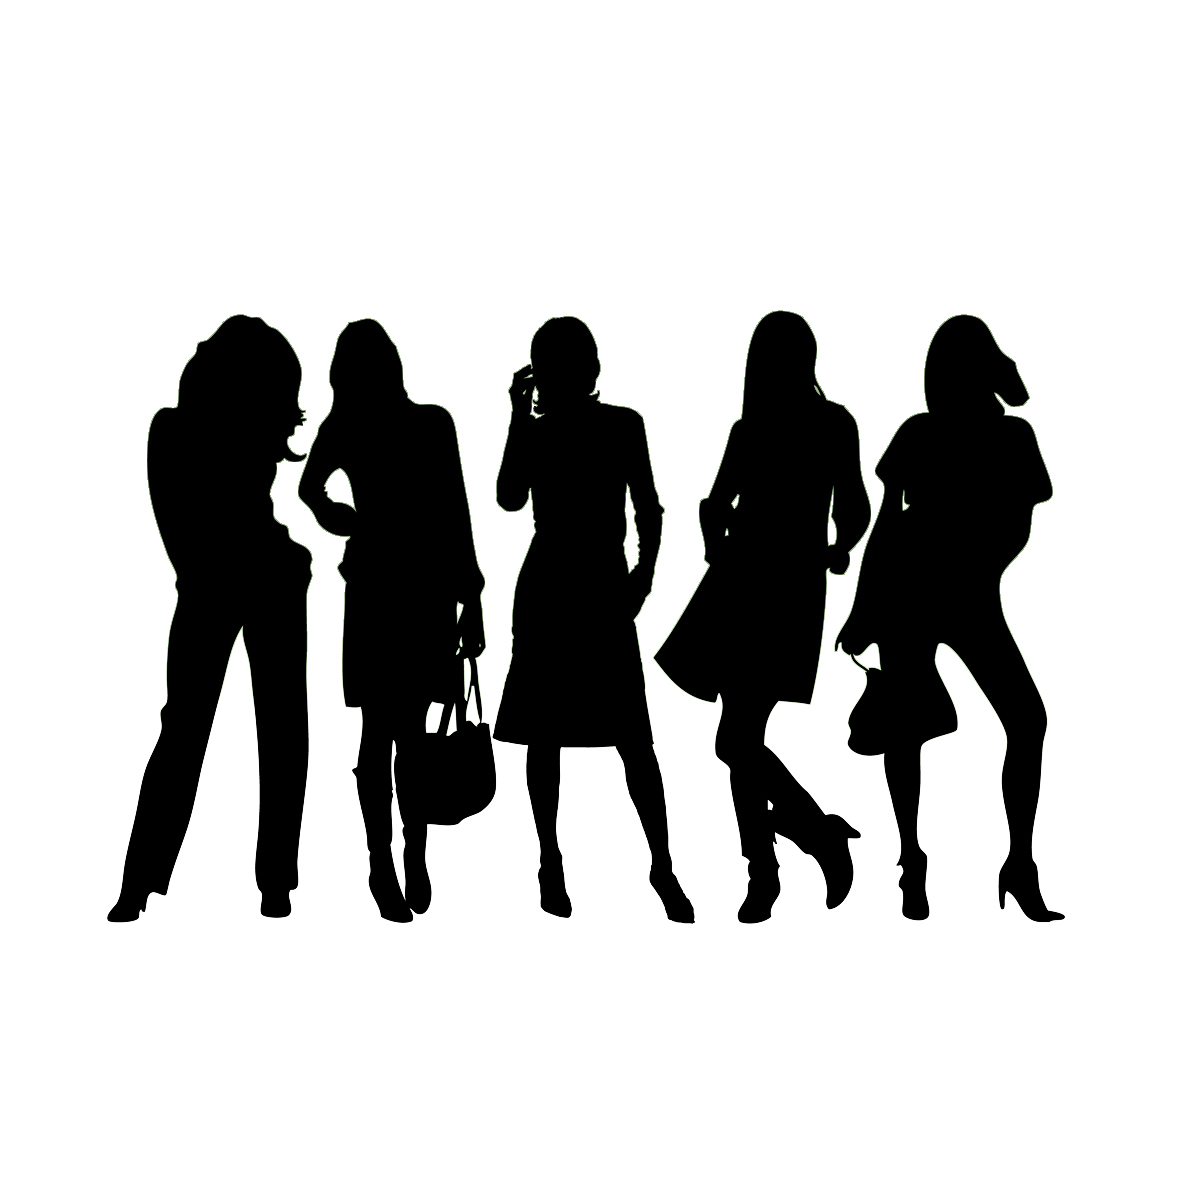 Free Women Working Cliparts, Download Free Clip Art, Free Clip Art.